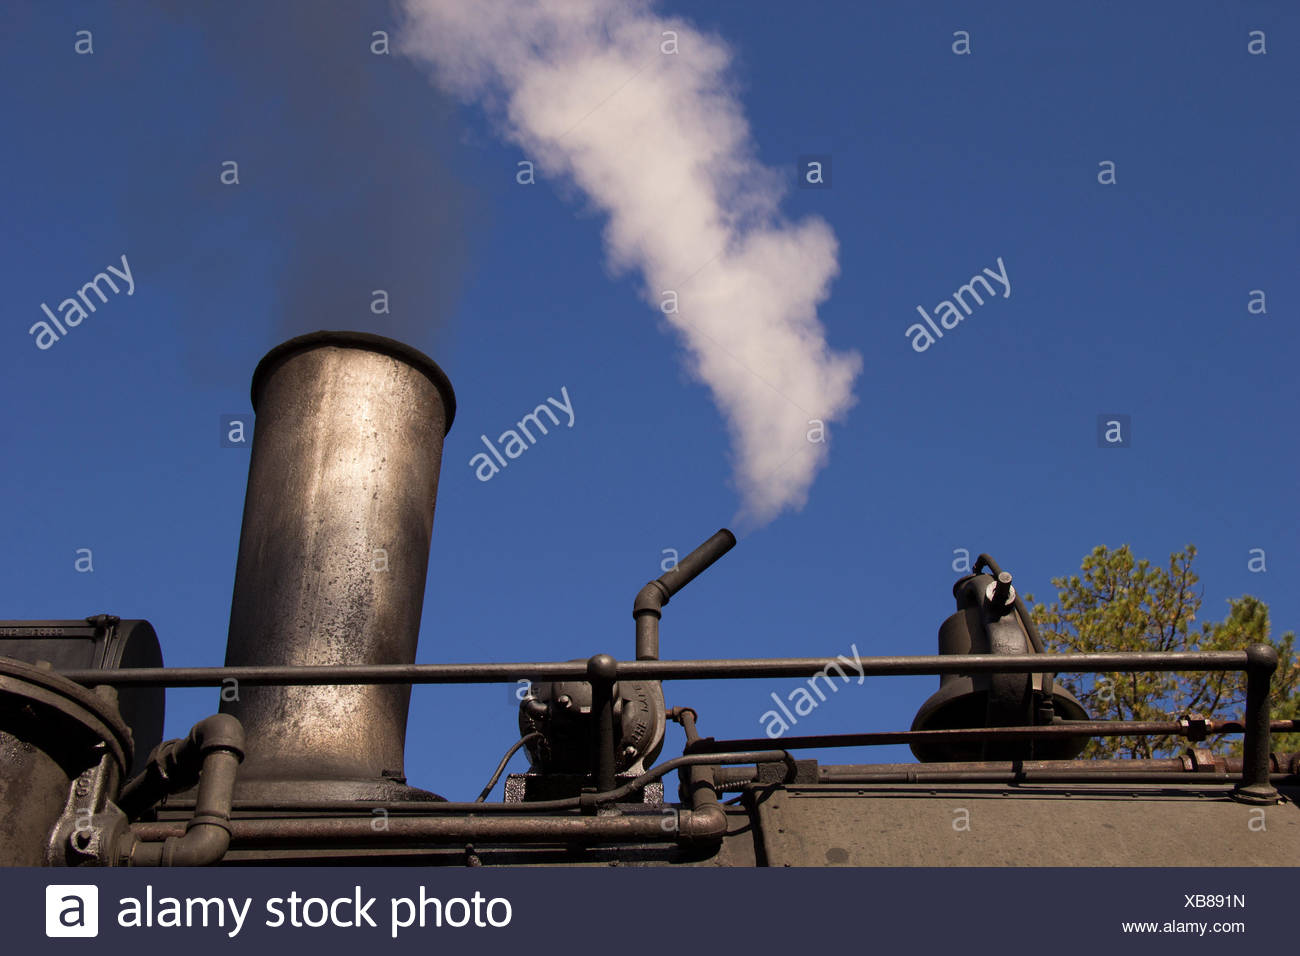 Escaping steam whispers from a steam locomotive ready to go. - Stock Image